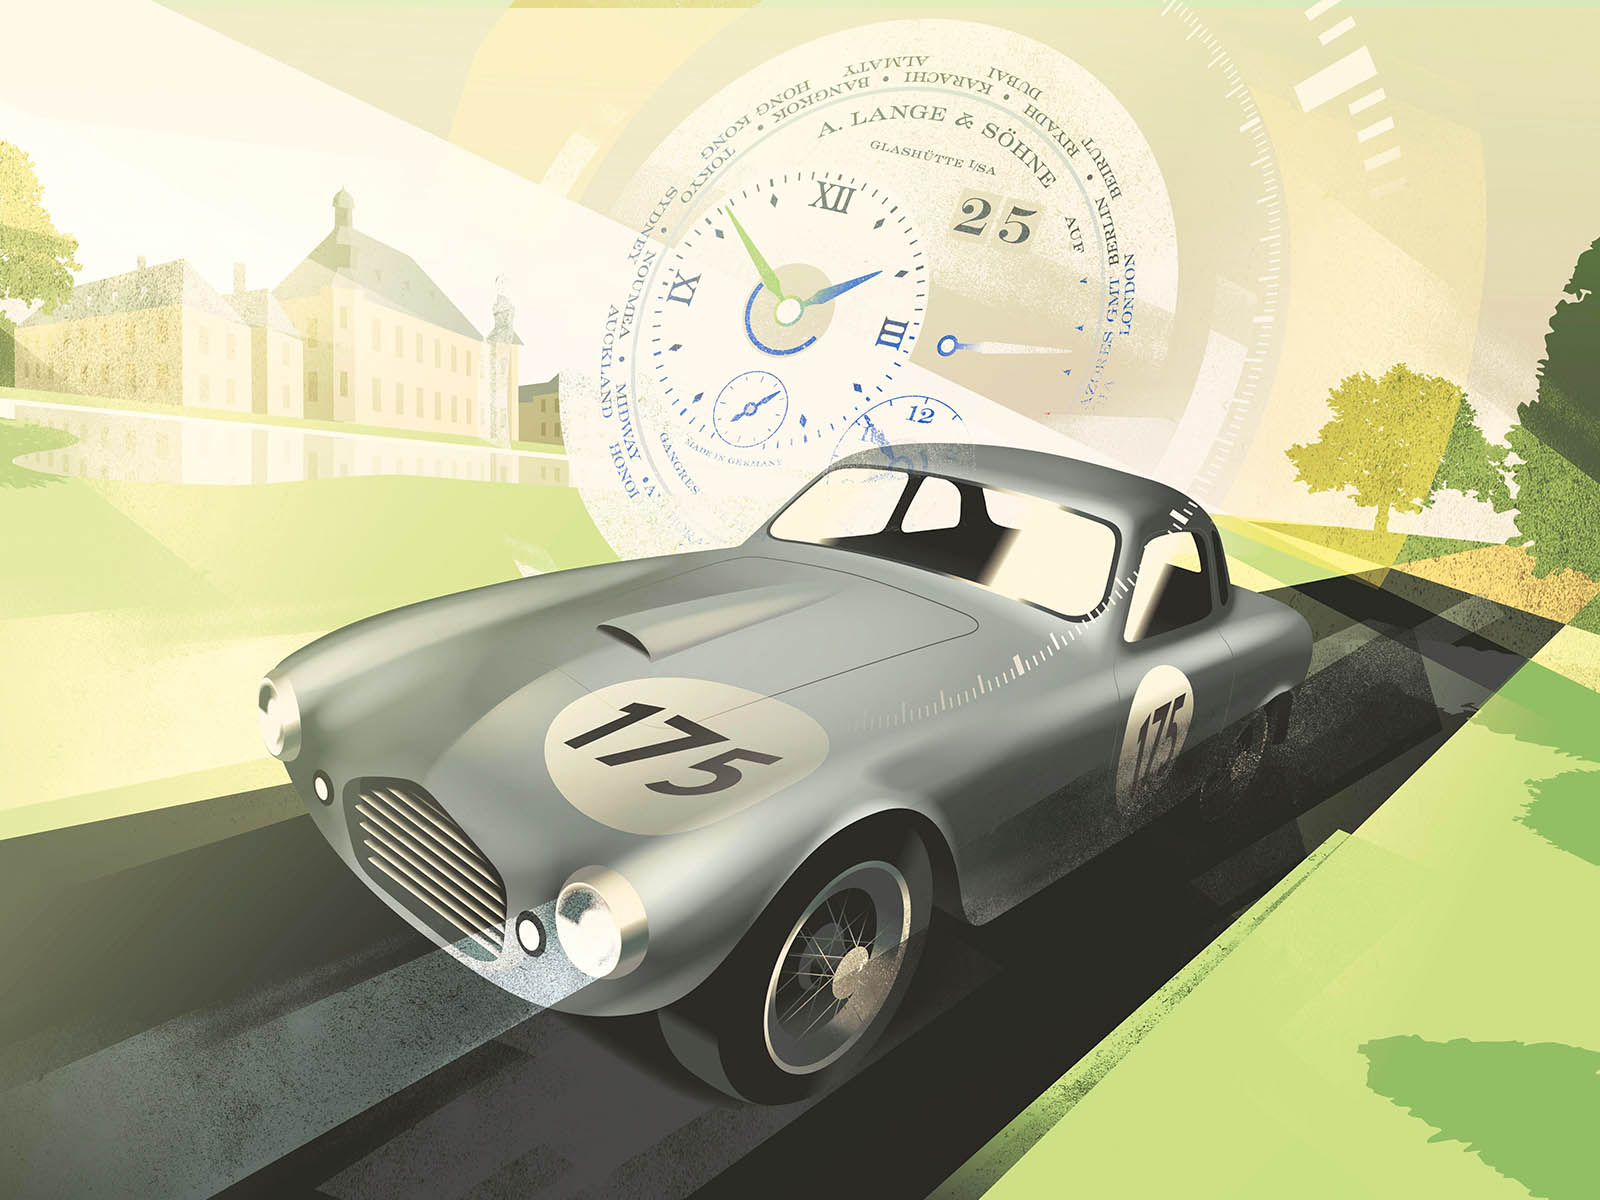 a-lange-sohne-concours-virtual-for-unisef-4.jpg